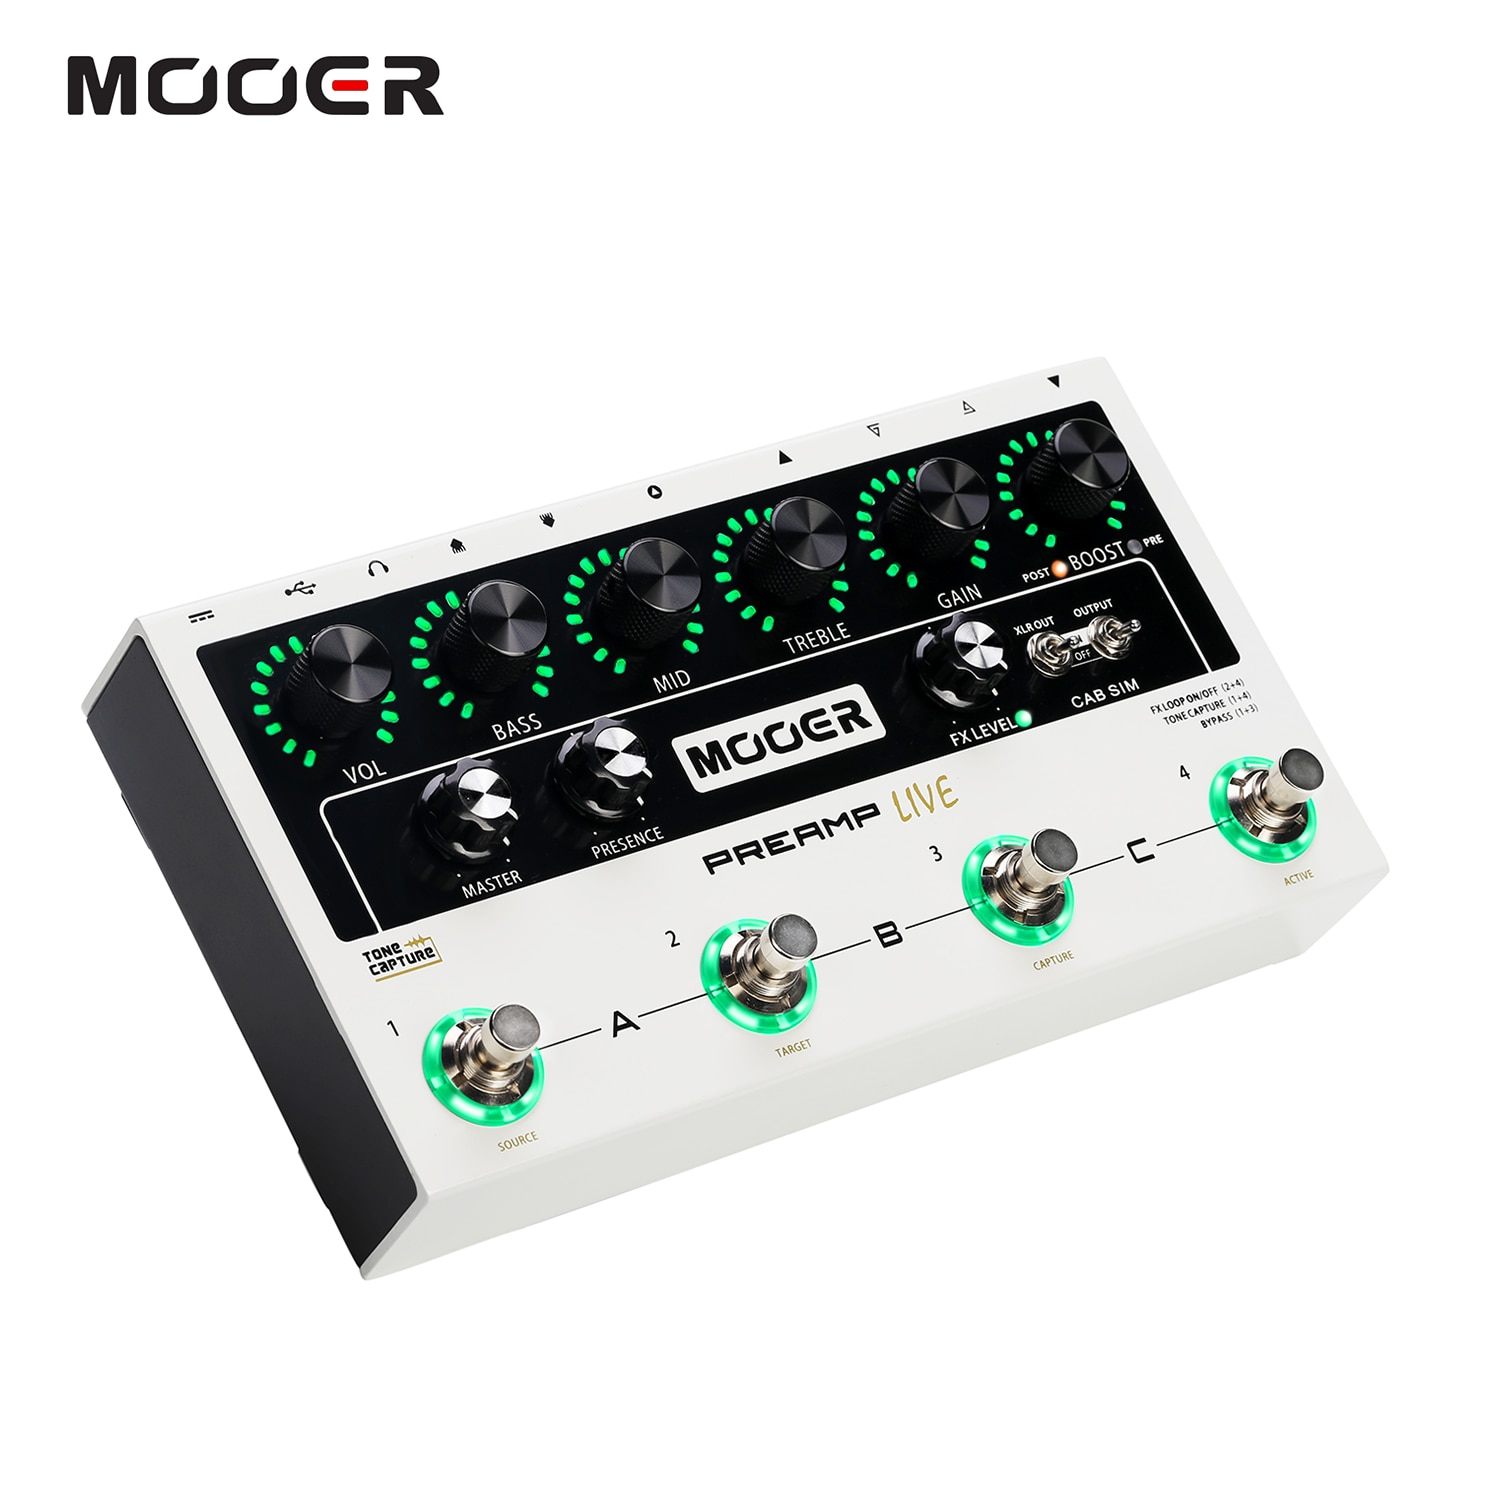 MOOER PREAMP LIVE Professional Digital Preamp Pedal Preamplifier12 Channels Pre & Post Booster 3-Band EQ Speaker Cabinet